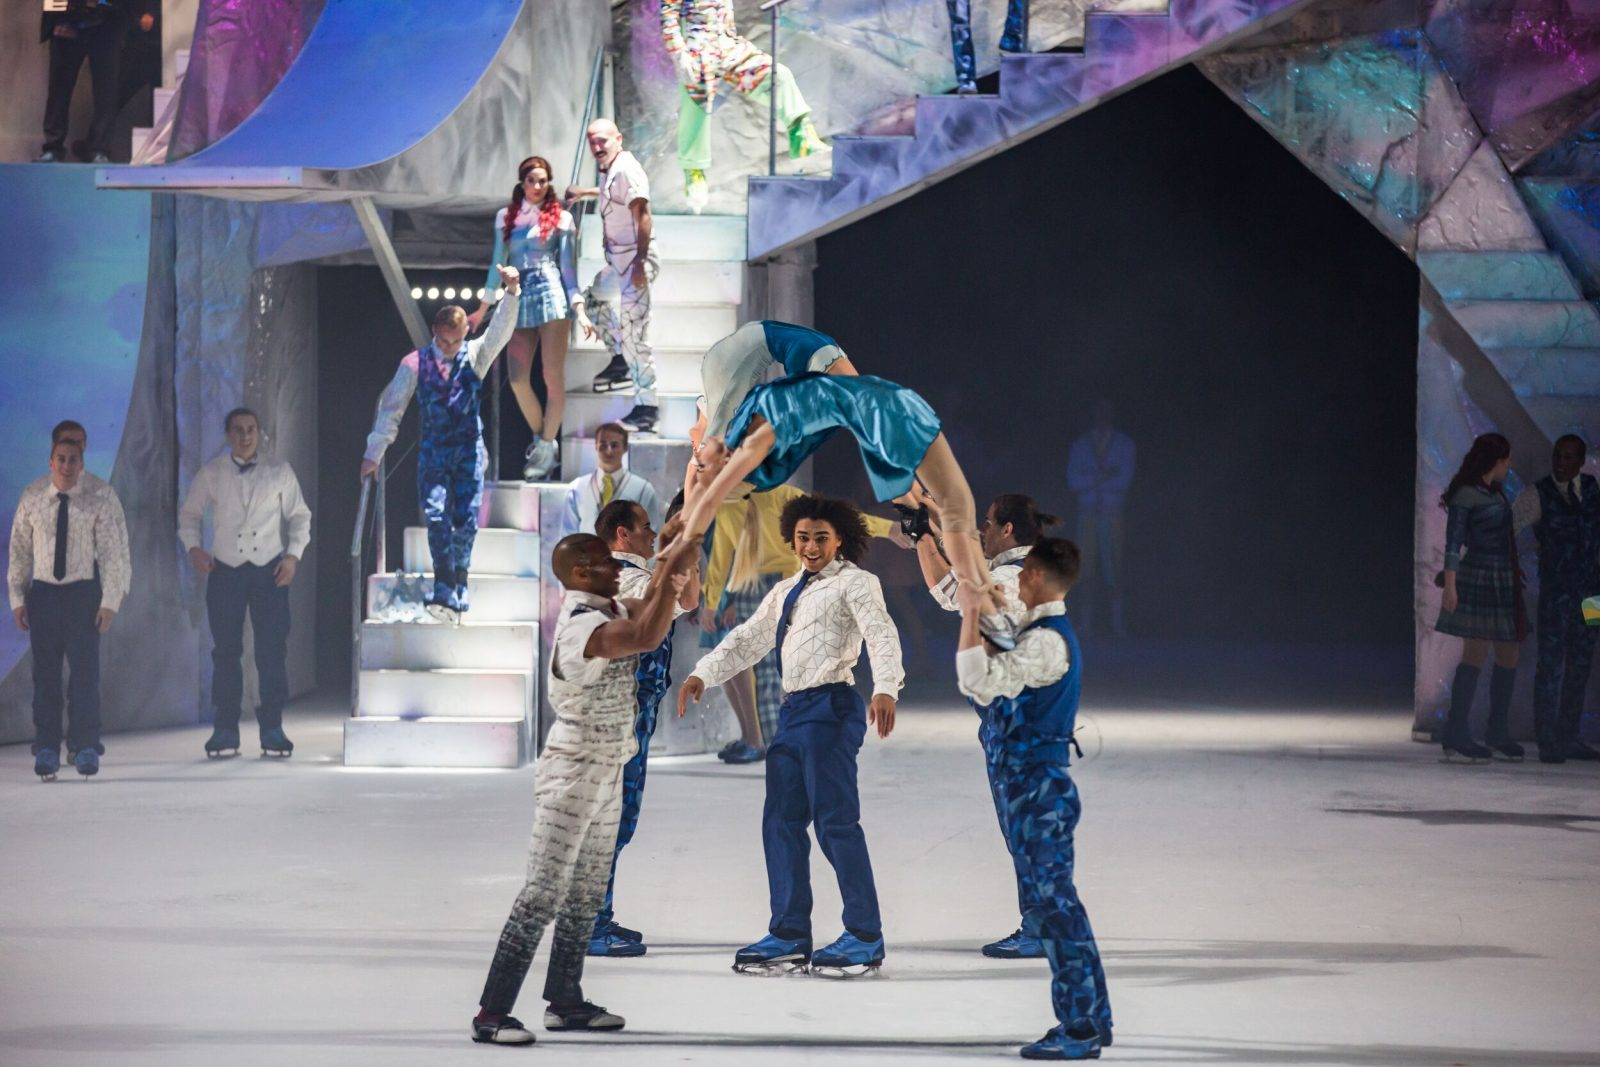 cast members holding up females in backbend position, with skaters dancing underneath the arches their backs make